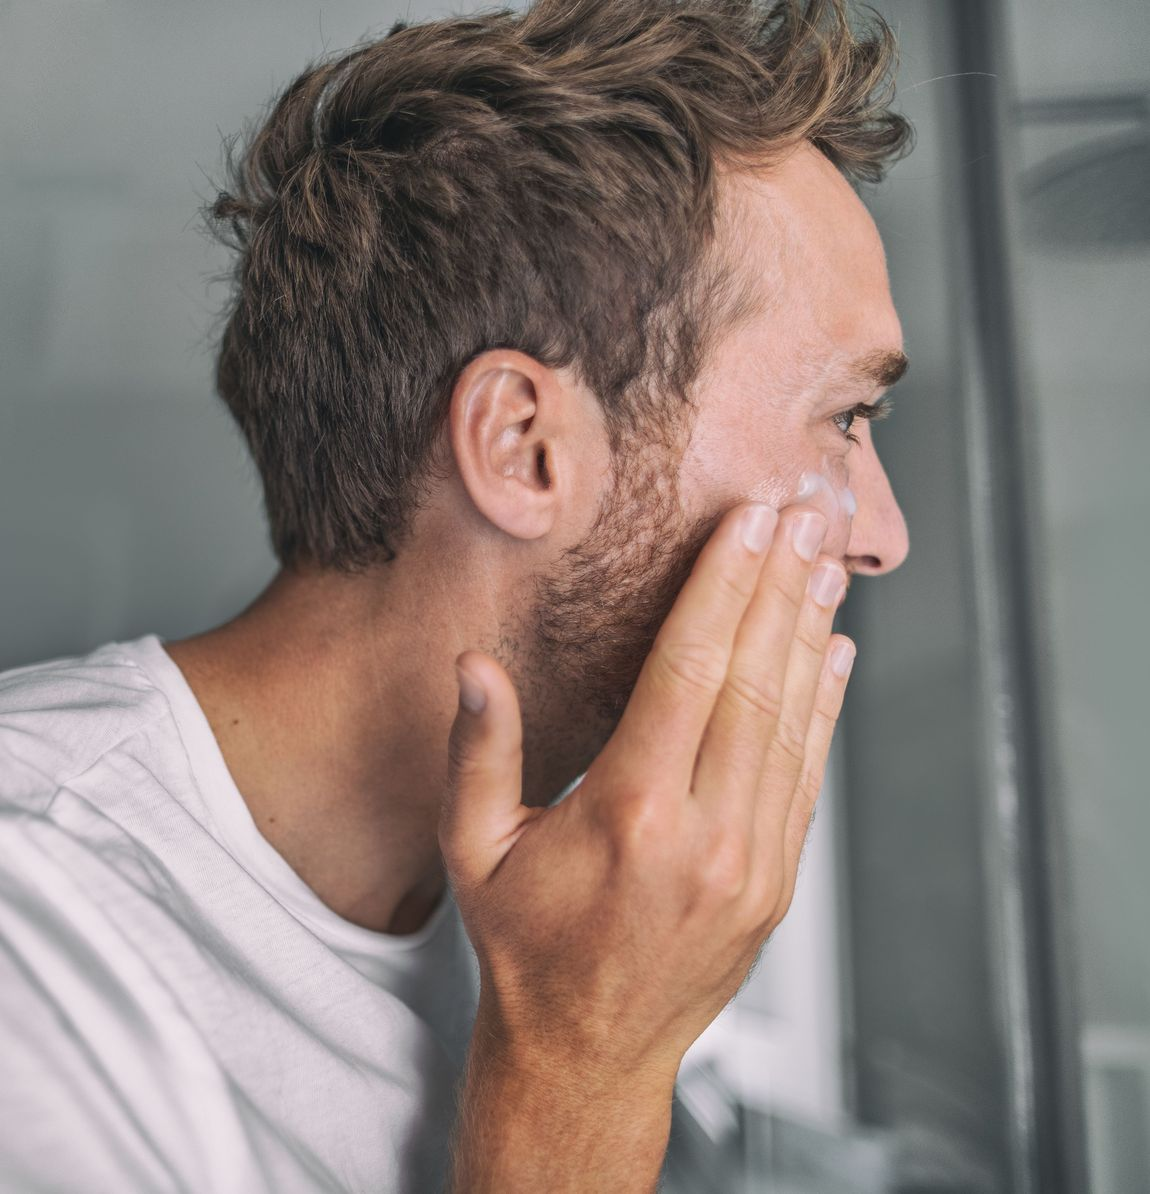 Man applying a facial cleanser